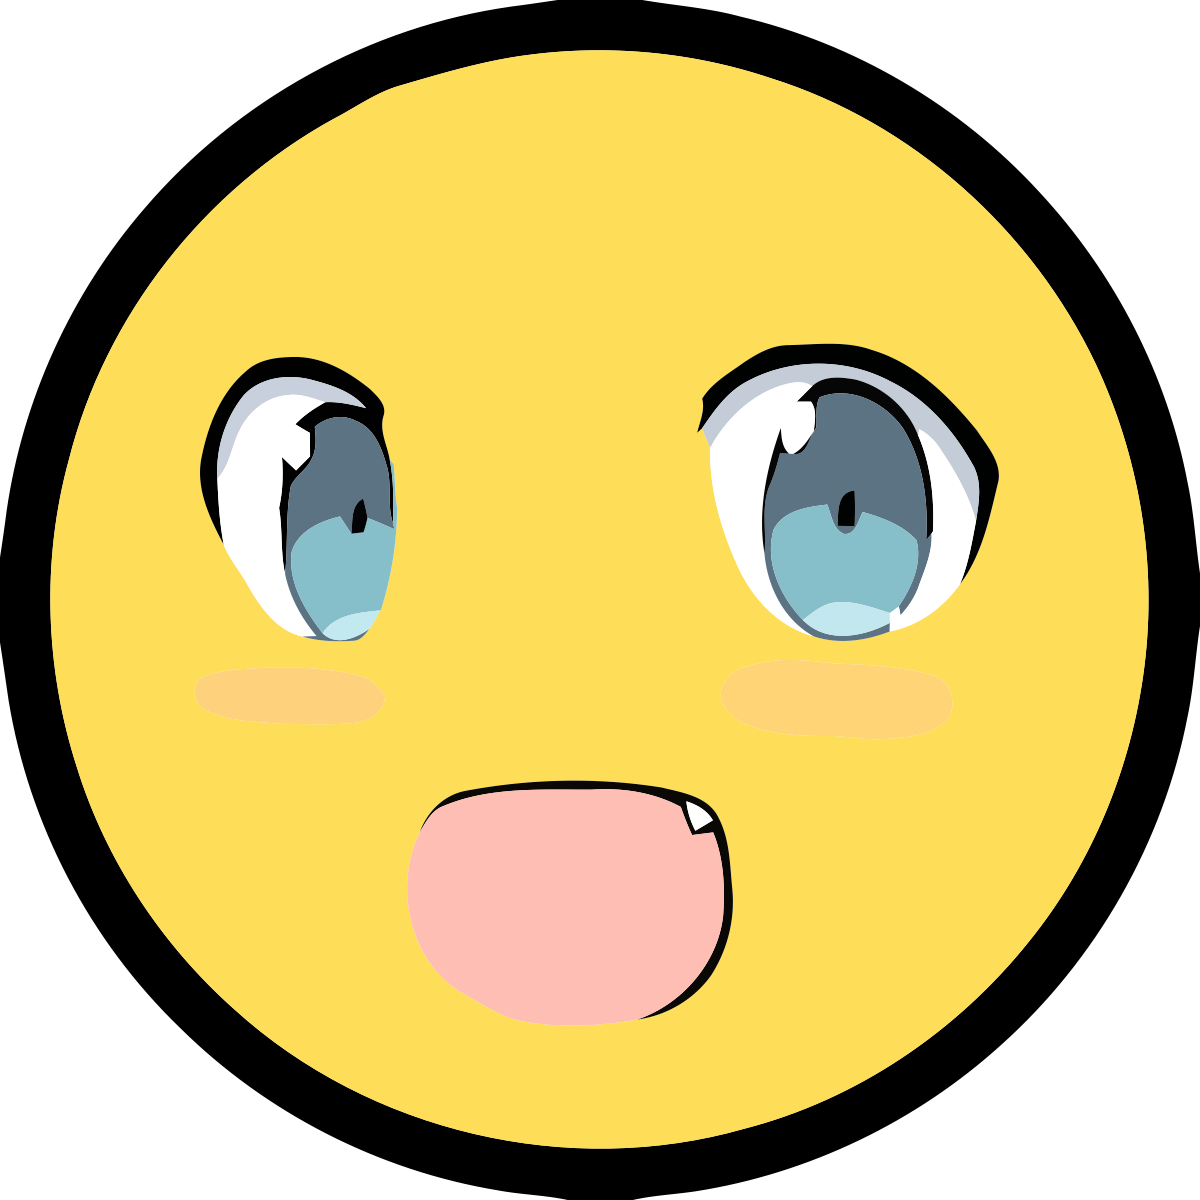 [Image - 128345] | Awesome Face / Epic Smiley | Know Your Meme